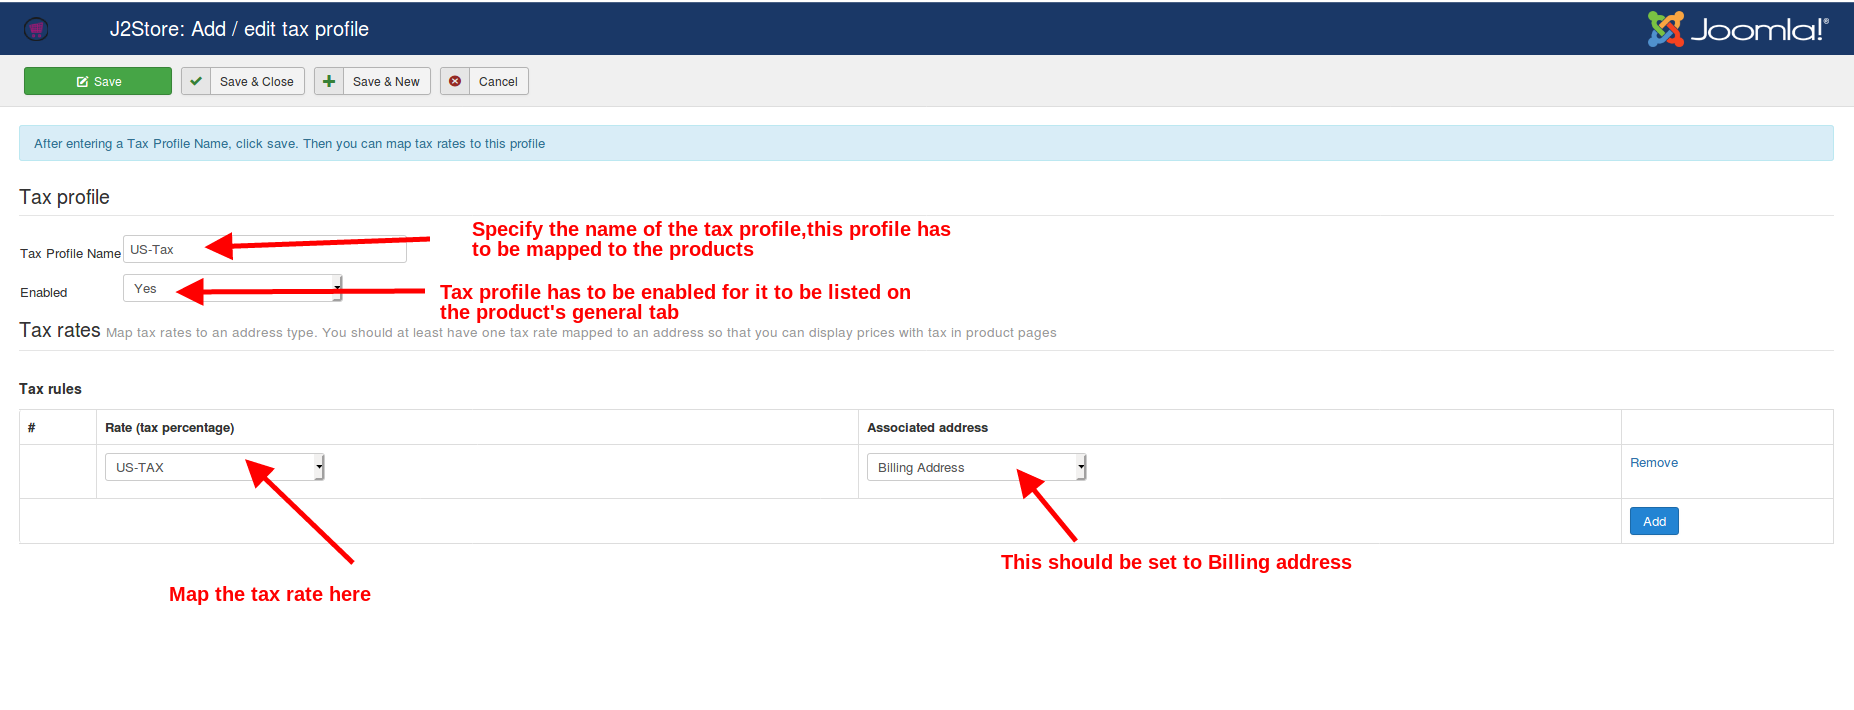 Adding details to tax profiles